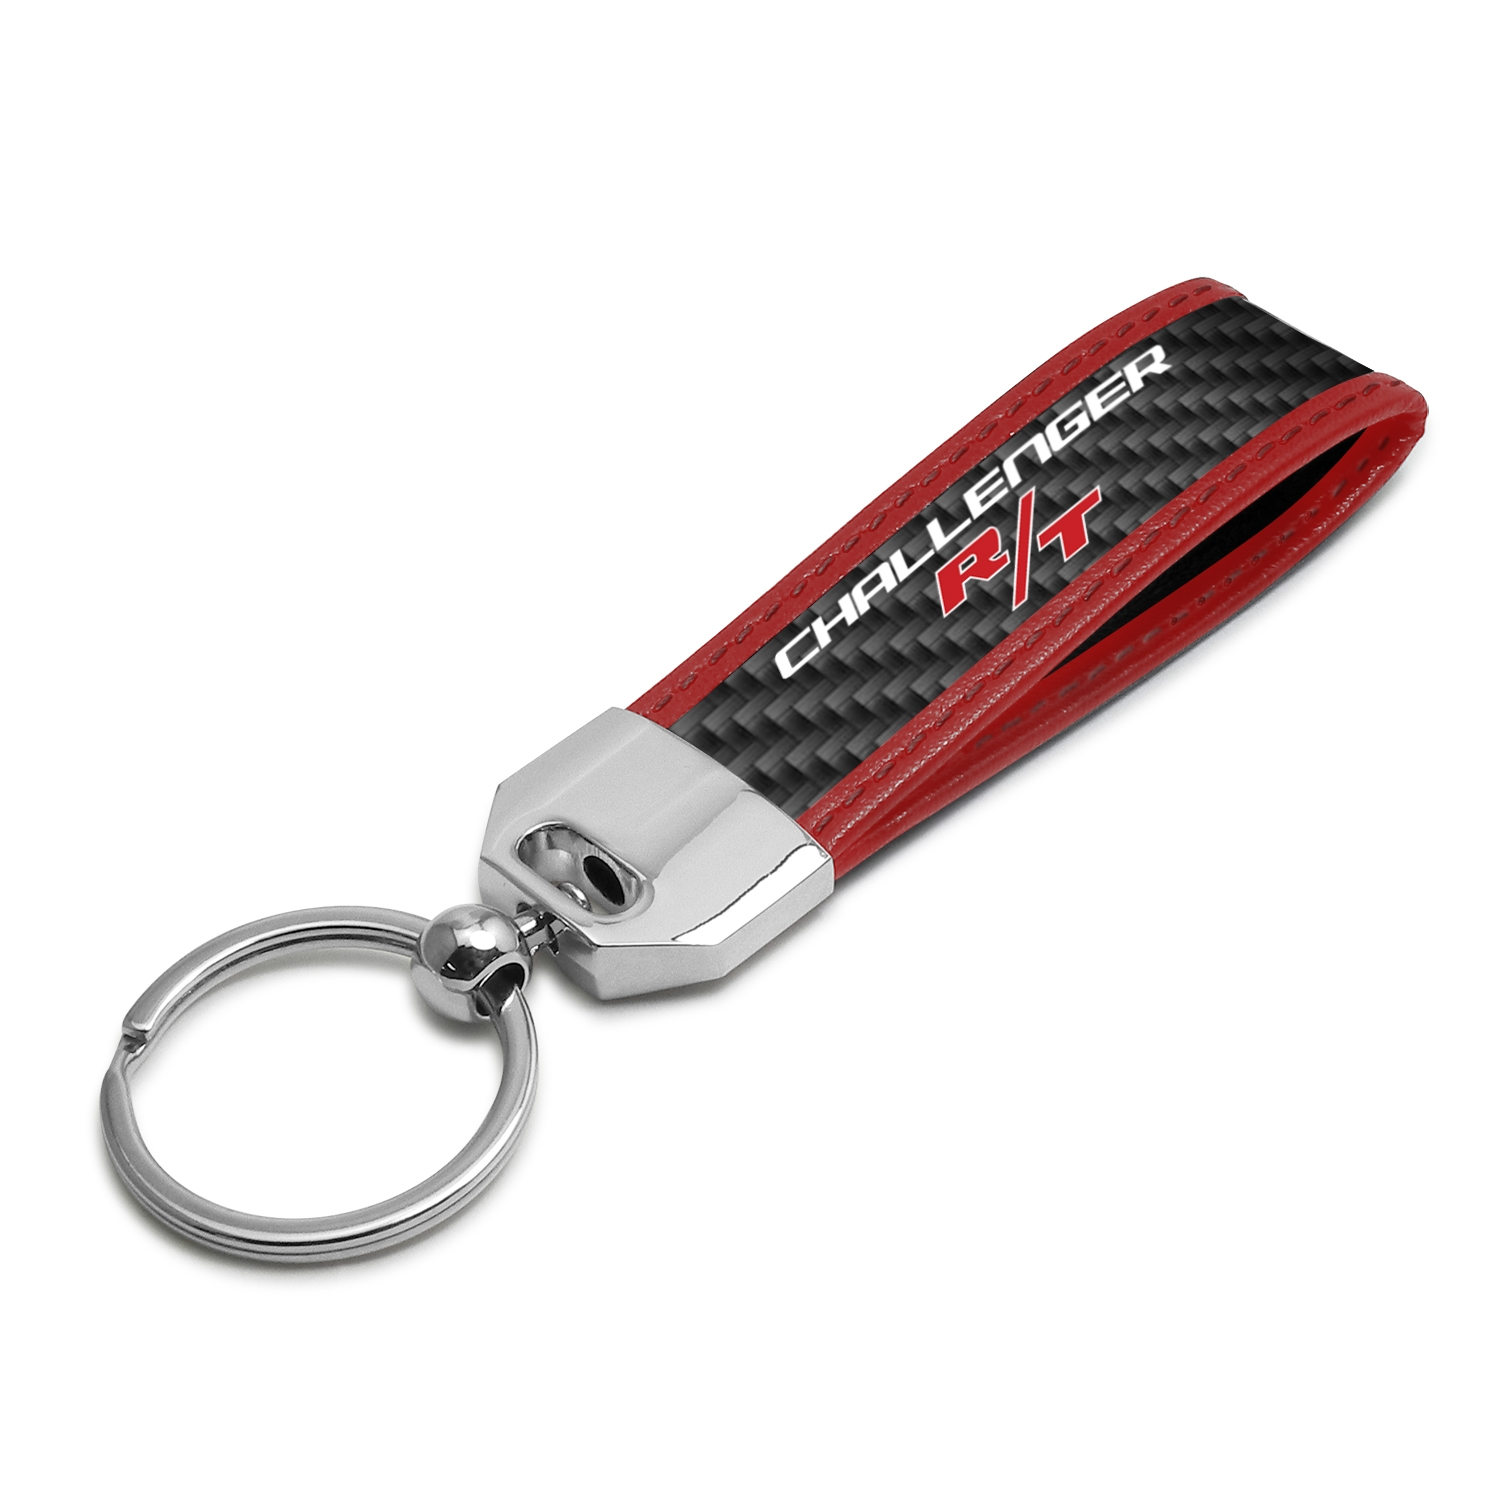 Dodge Challenger R/T Real Carbon Fiber Strap Key Chain with Red Edge